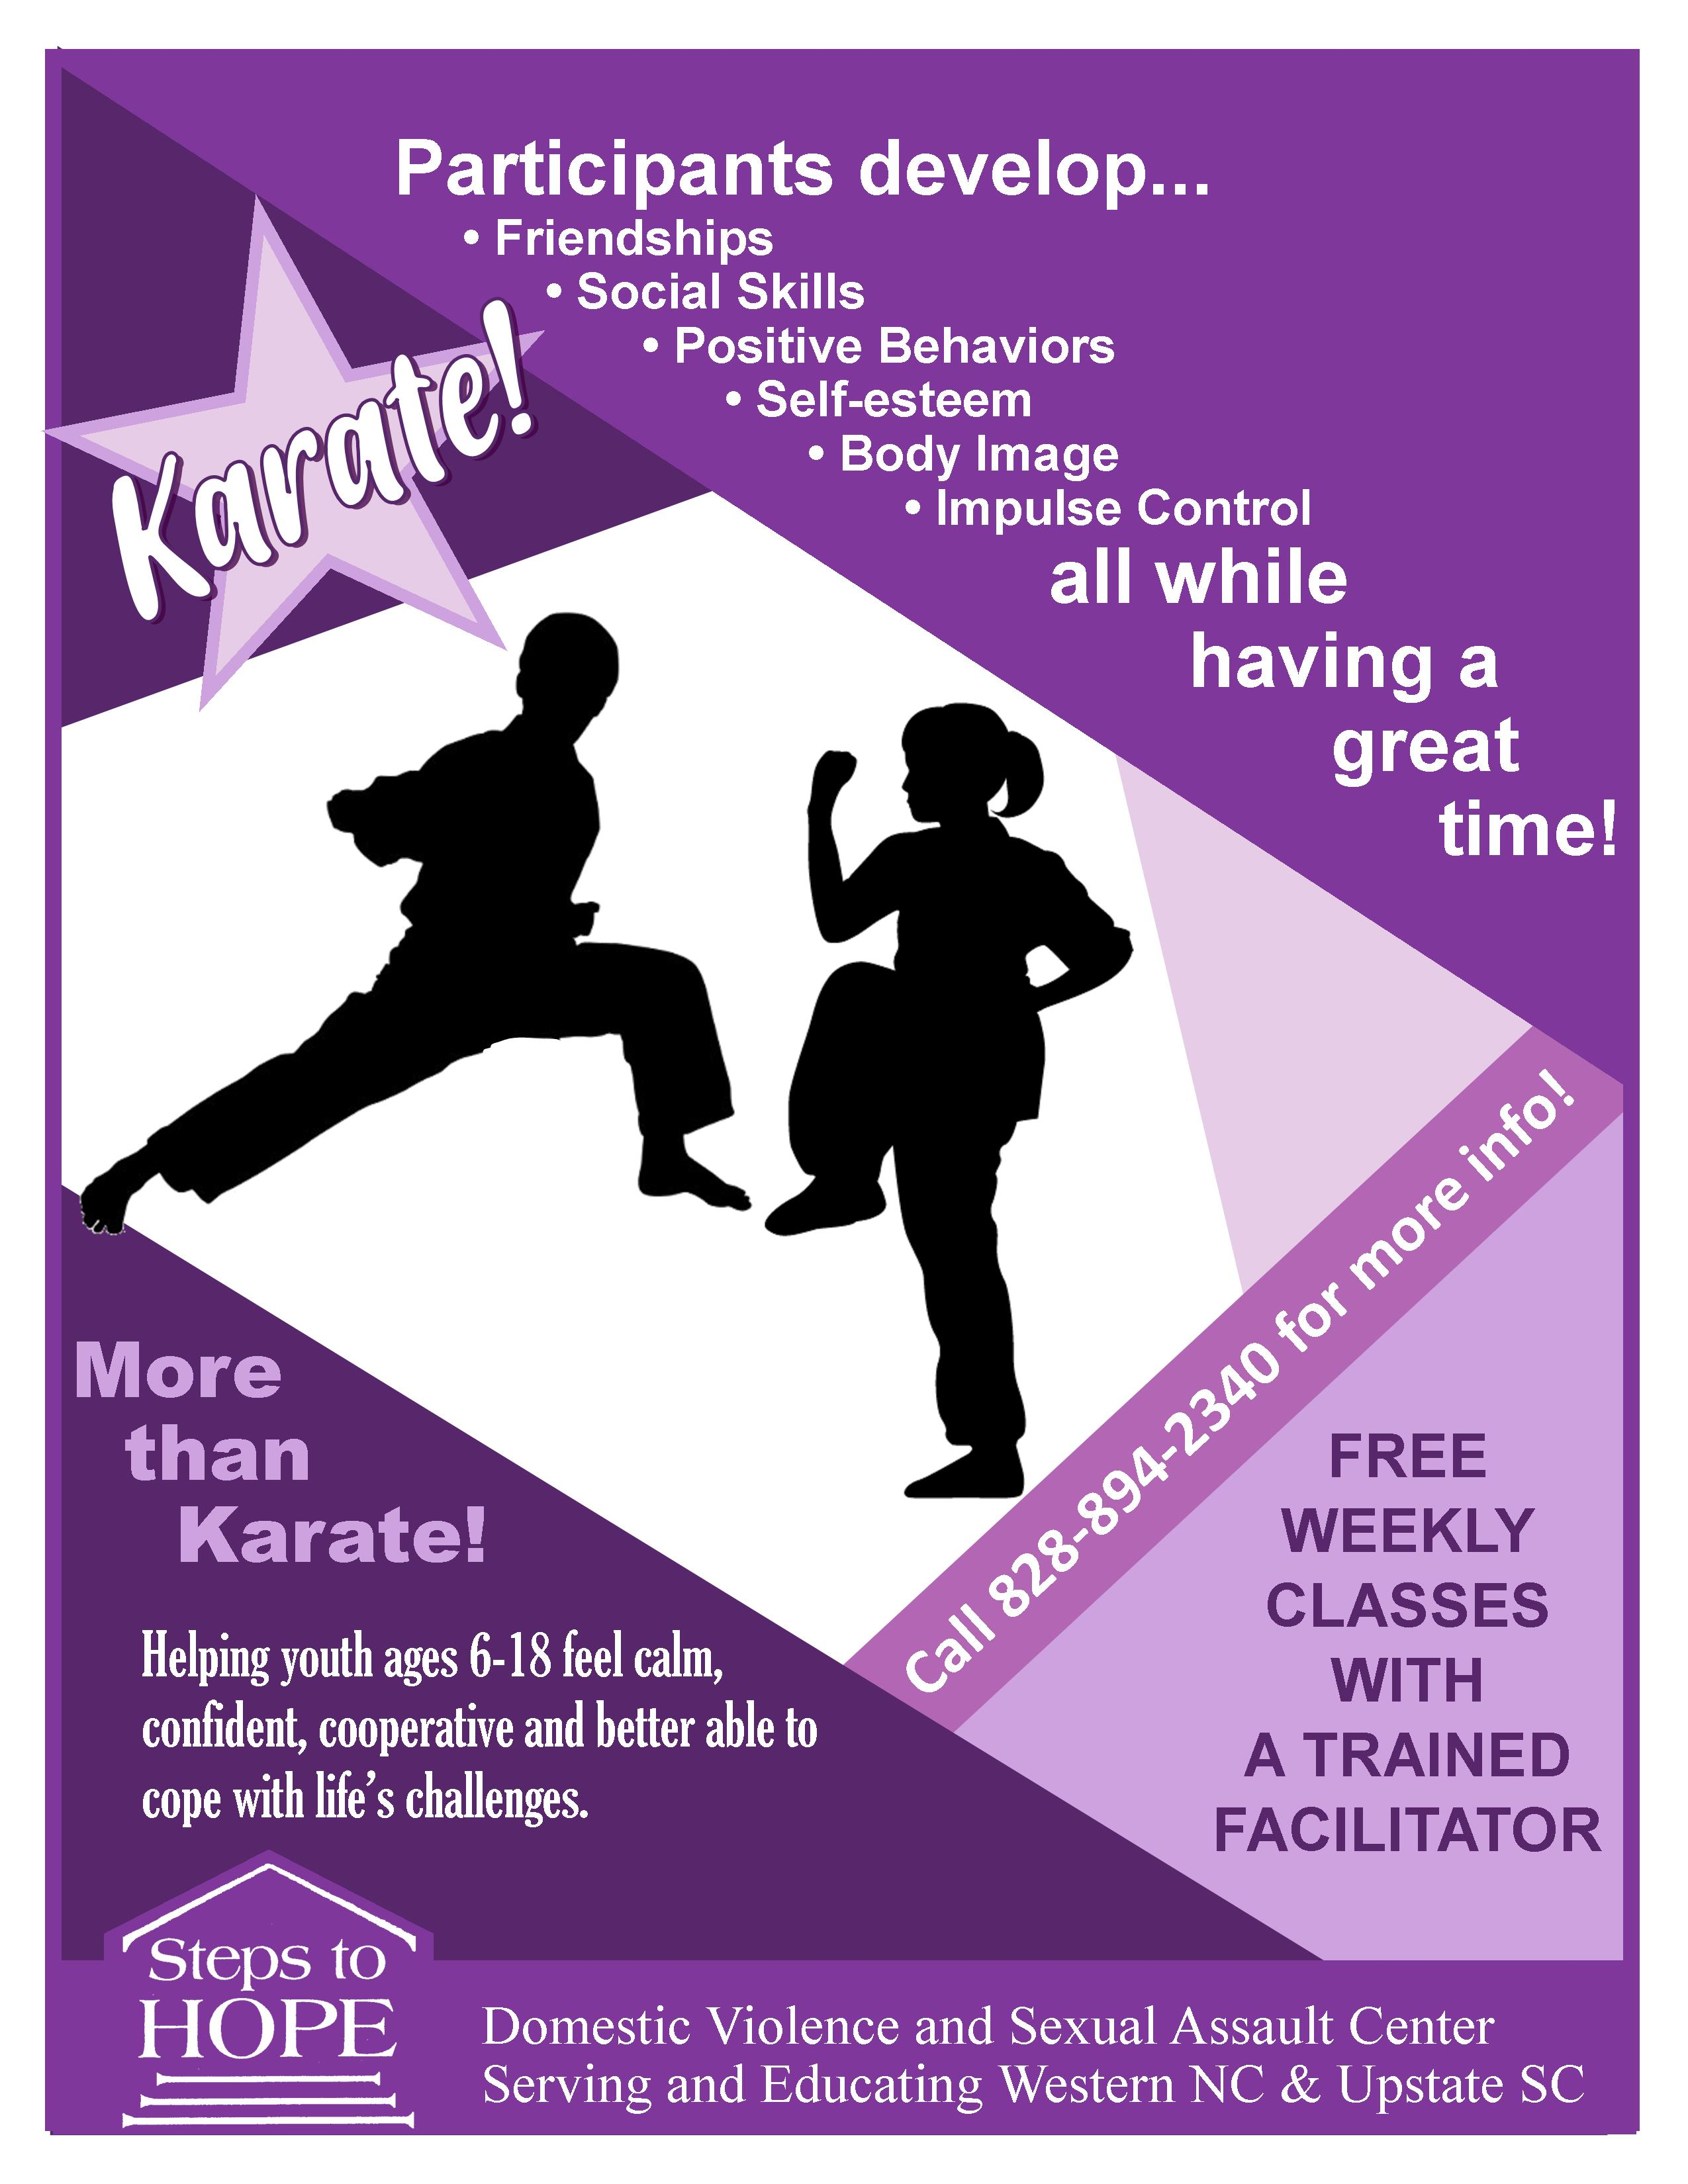 ASK - Adolescent Skill-building and Karate